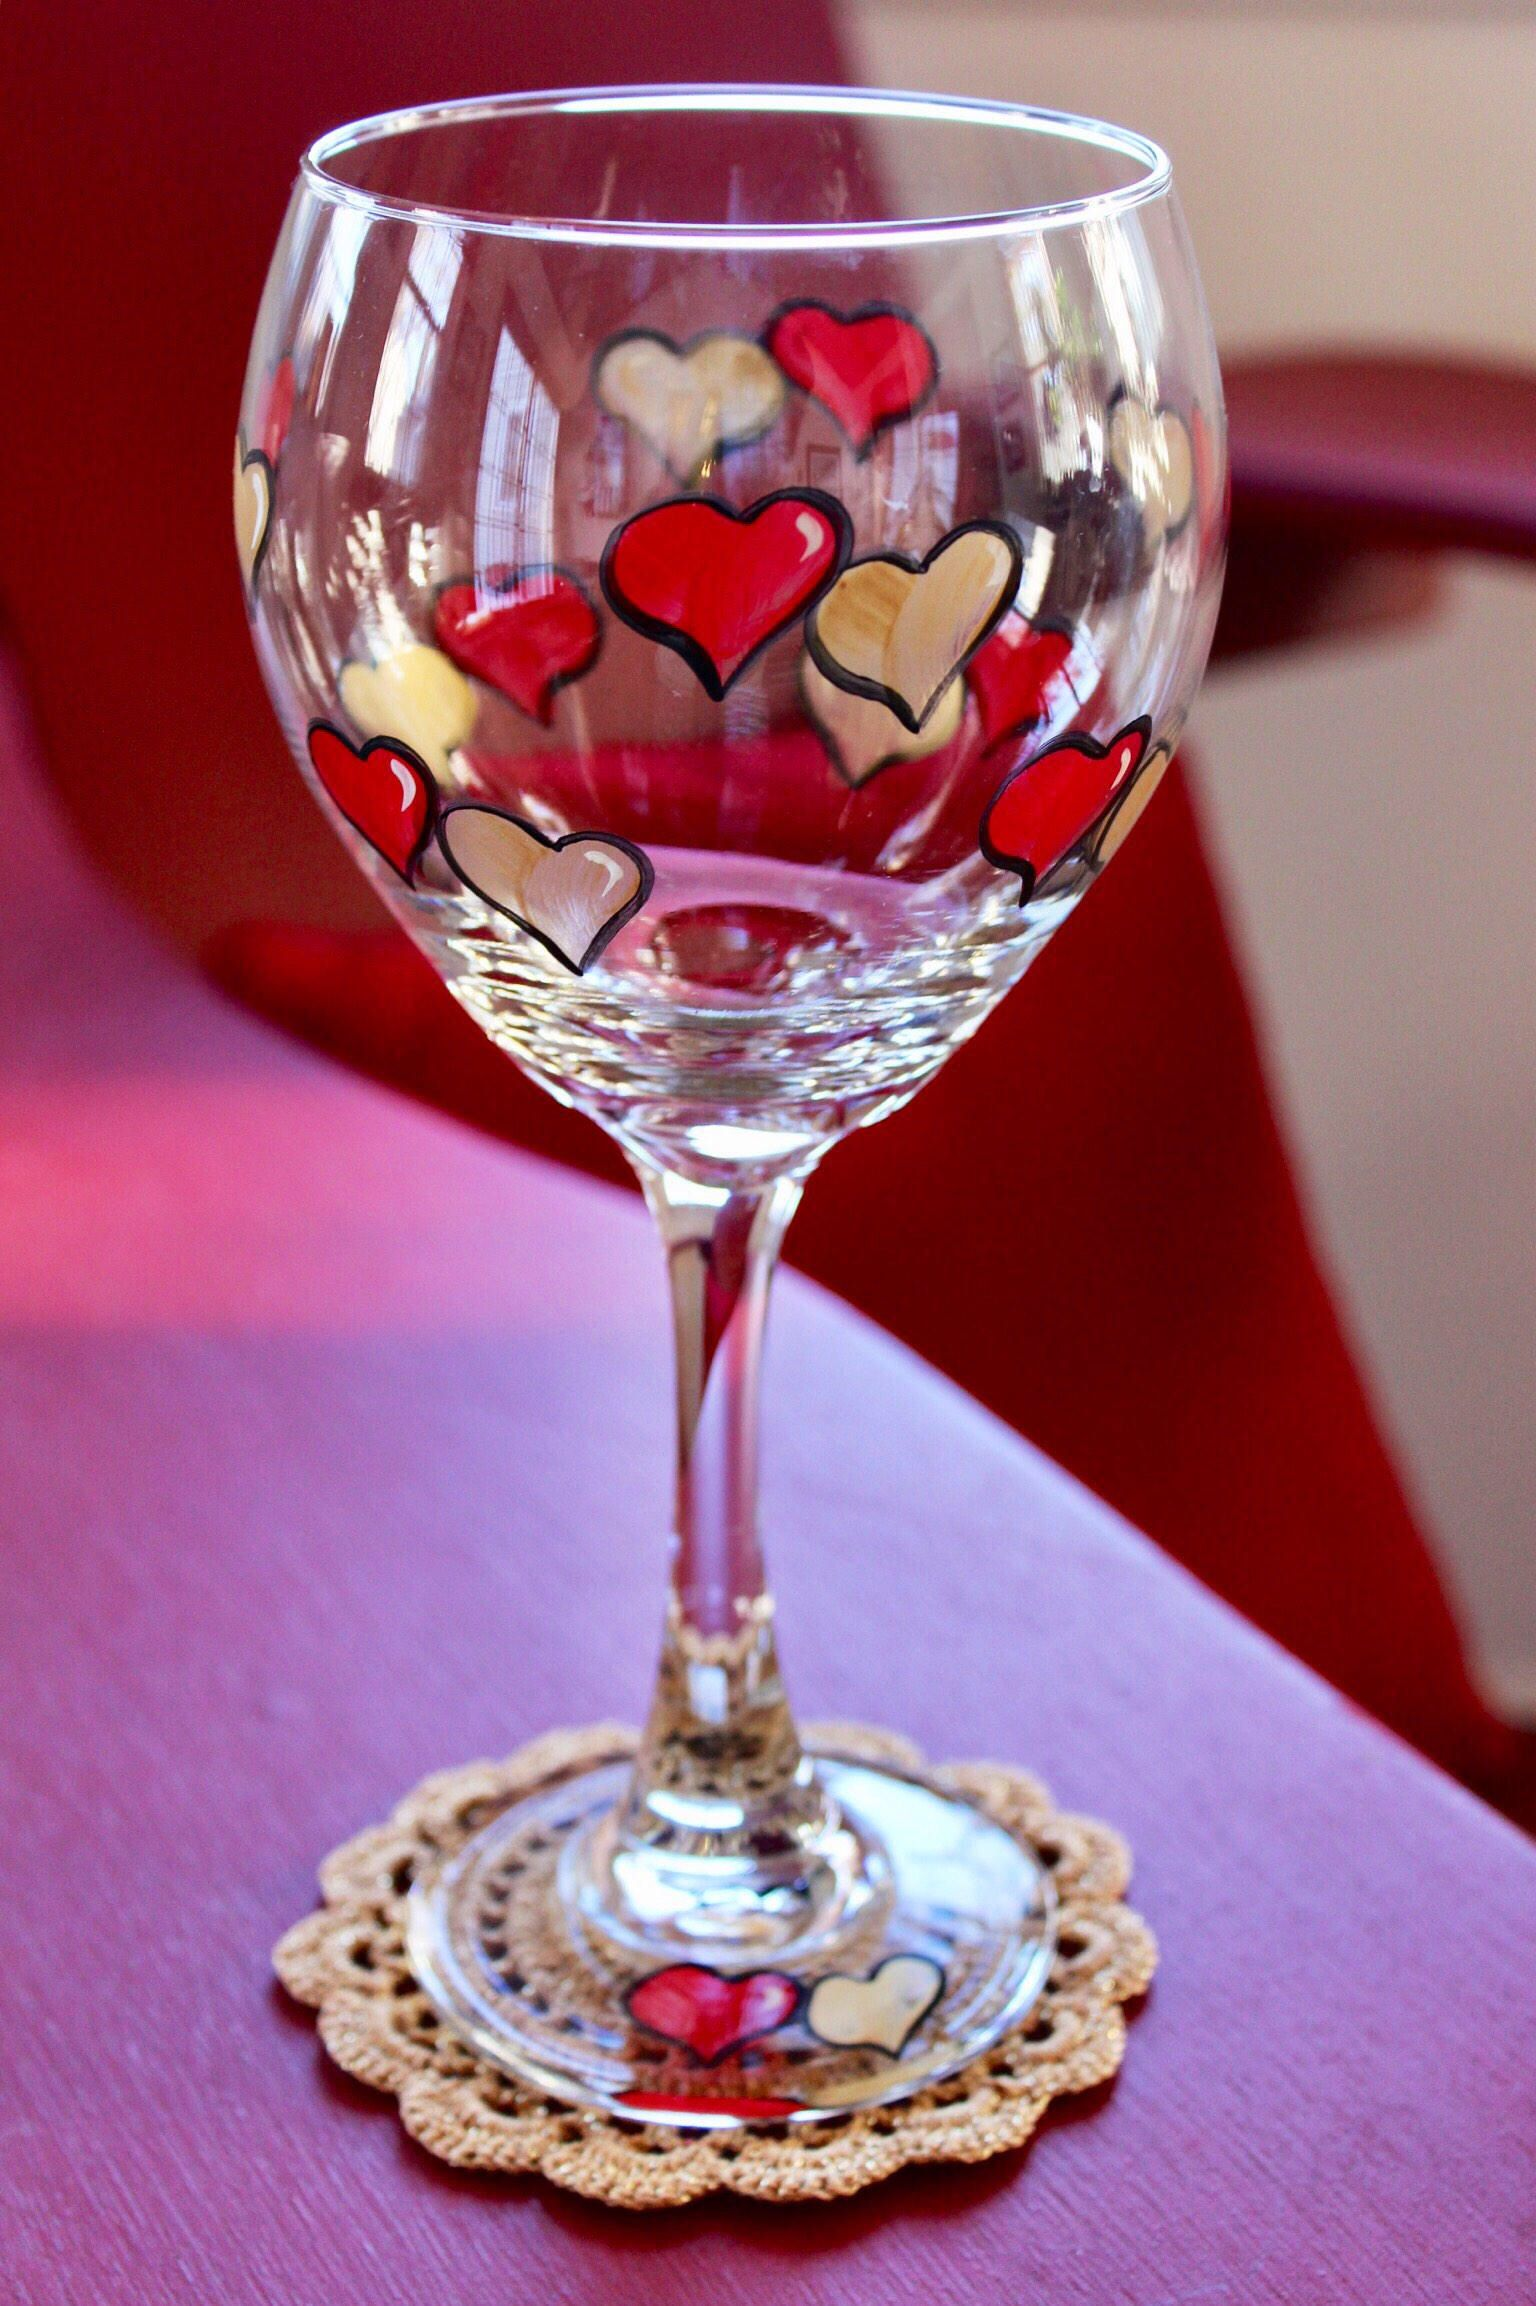 Red And Gold Hearts Hand Painted Wine Glass Etsy In 2020 Hand Painted Wine Glass Painted Wine Glass Wine Glass